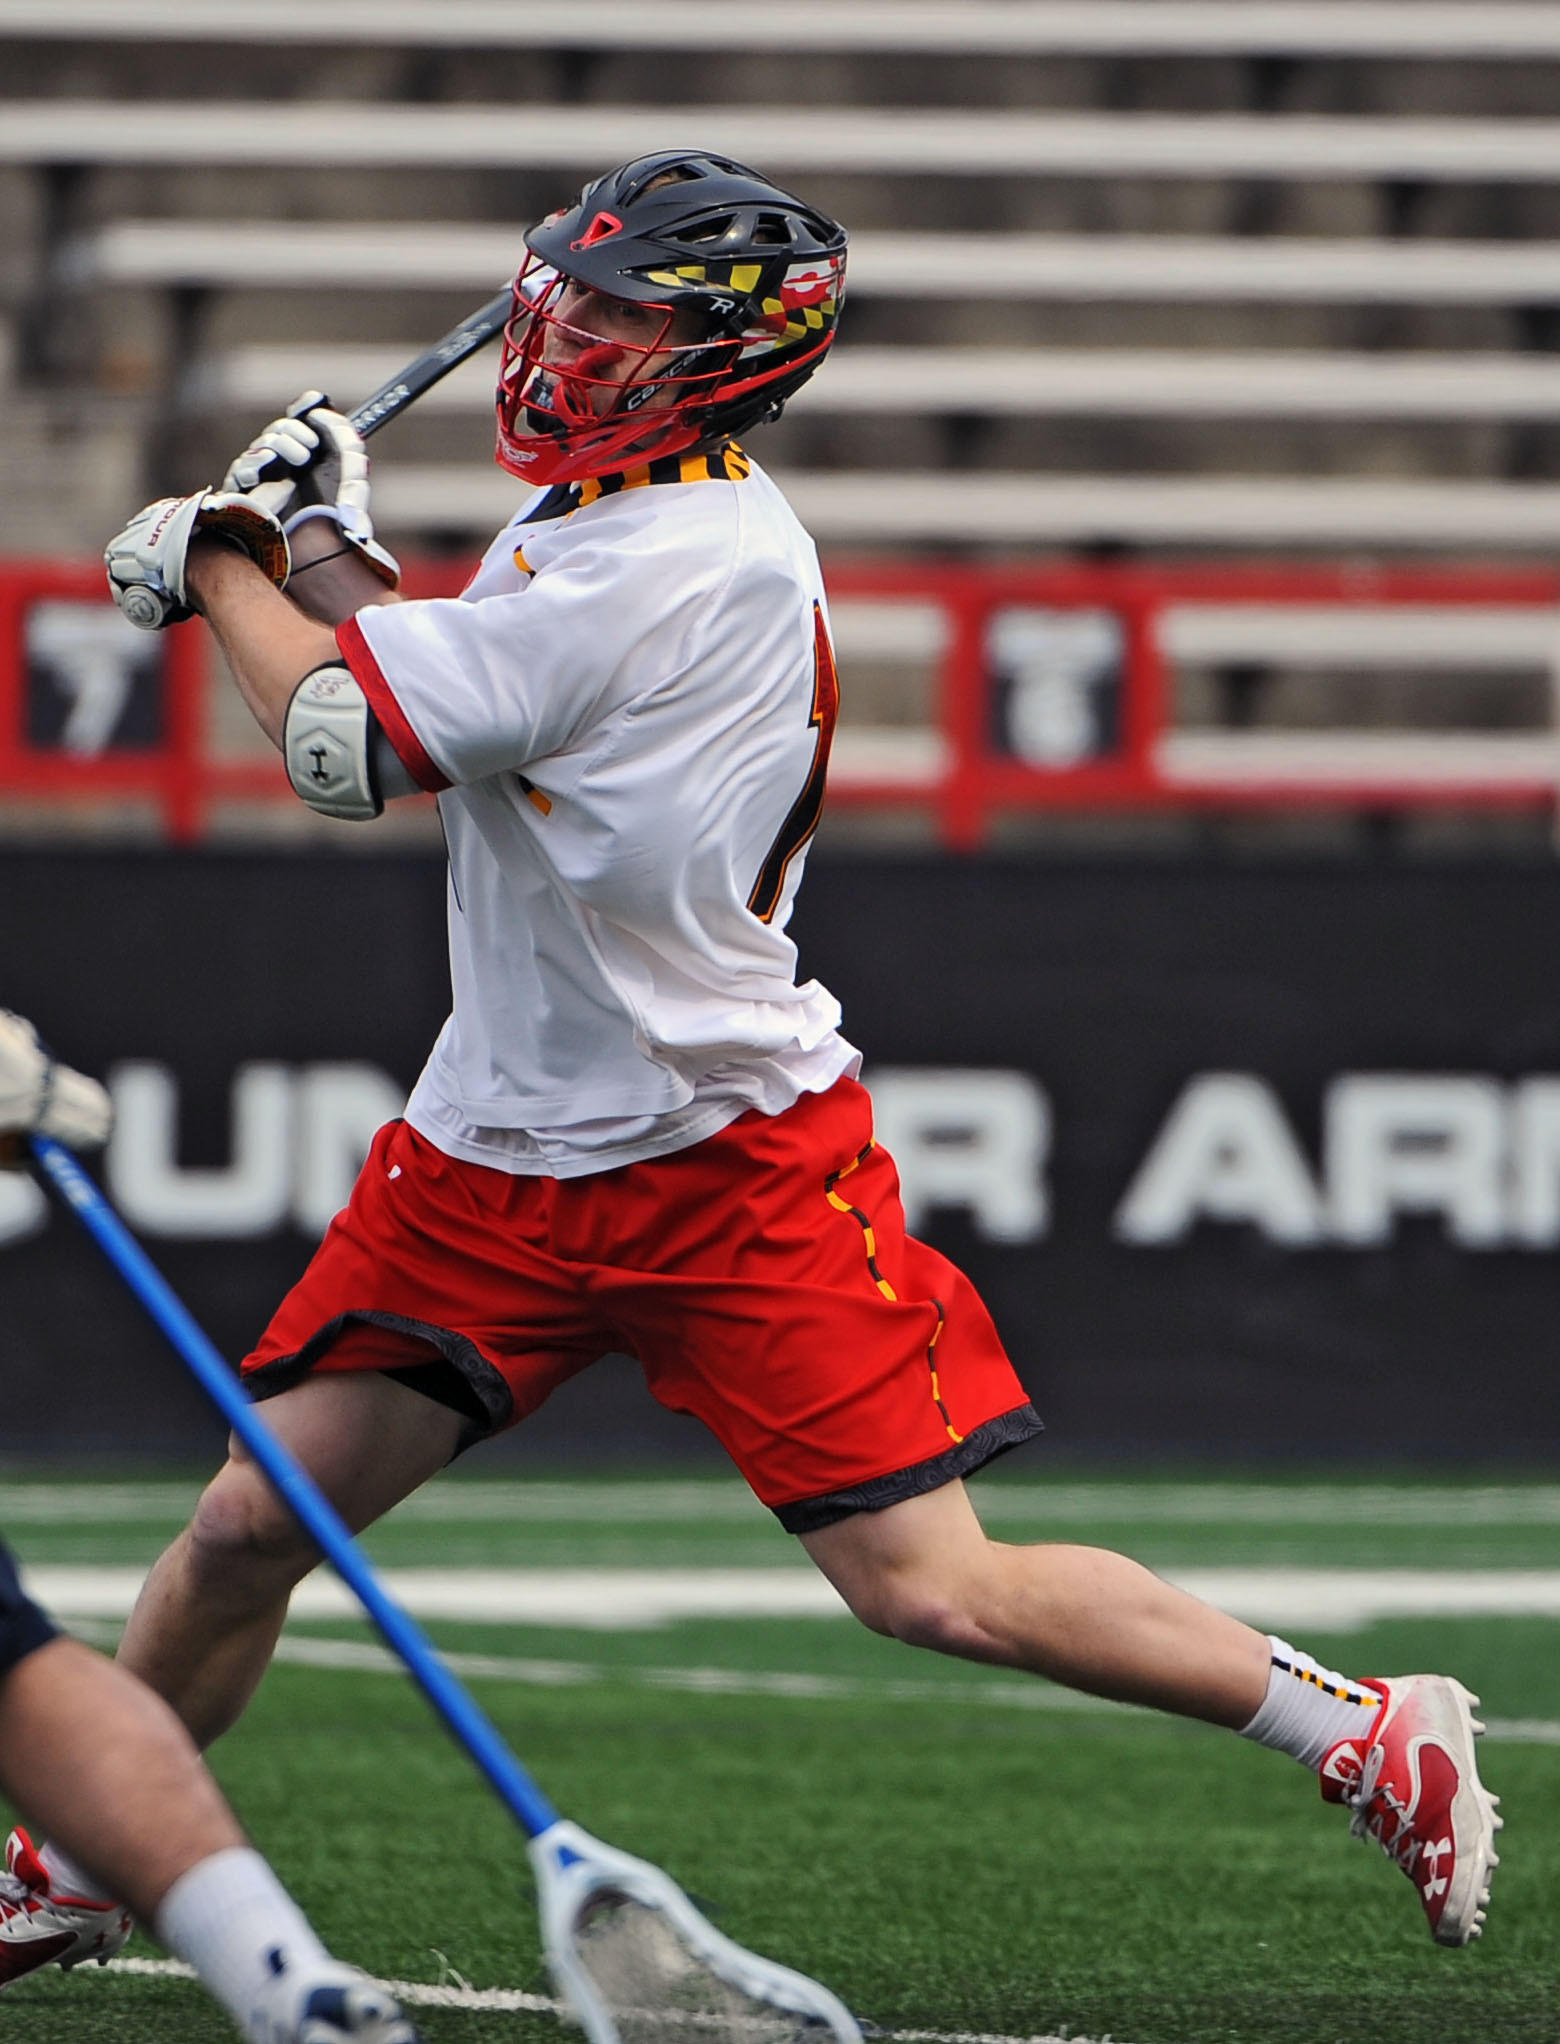 Maryland's Mike Chanenchuk winds up for a shot against Mount St. Mary's, scoring in the first quarter.